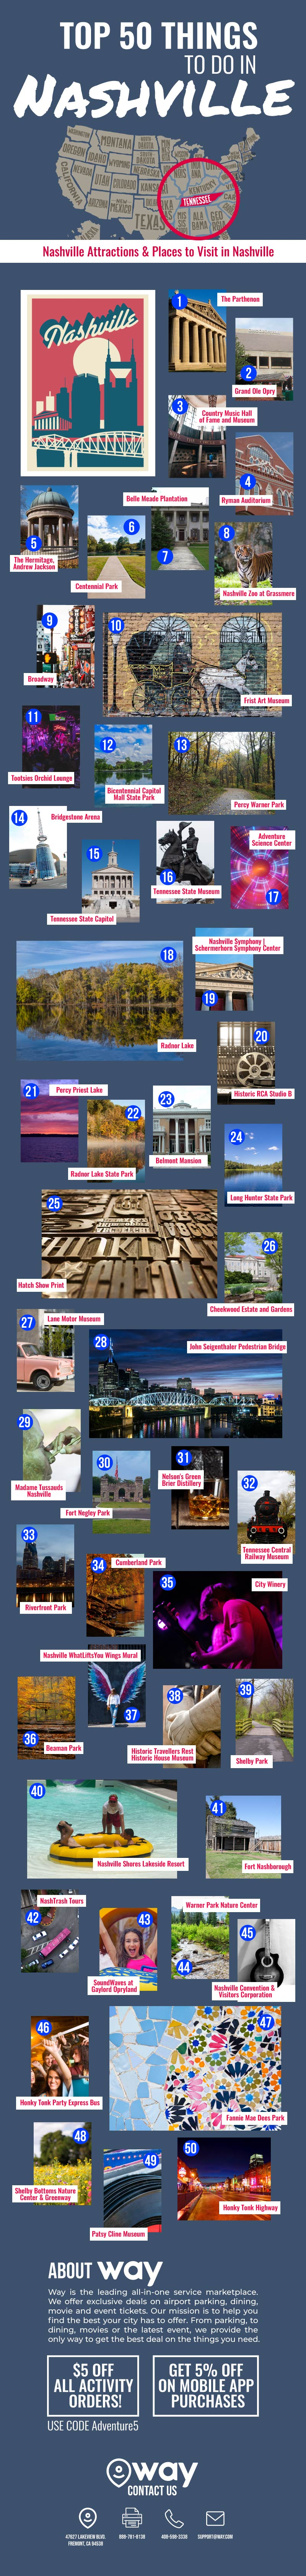 50 Must-Do Must-See Places in Nashville - Infographic